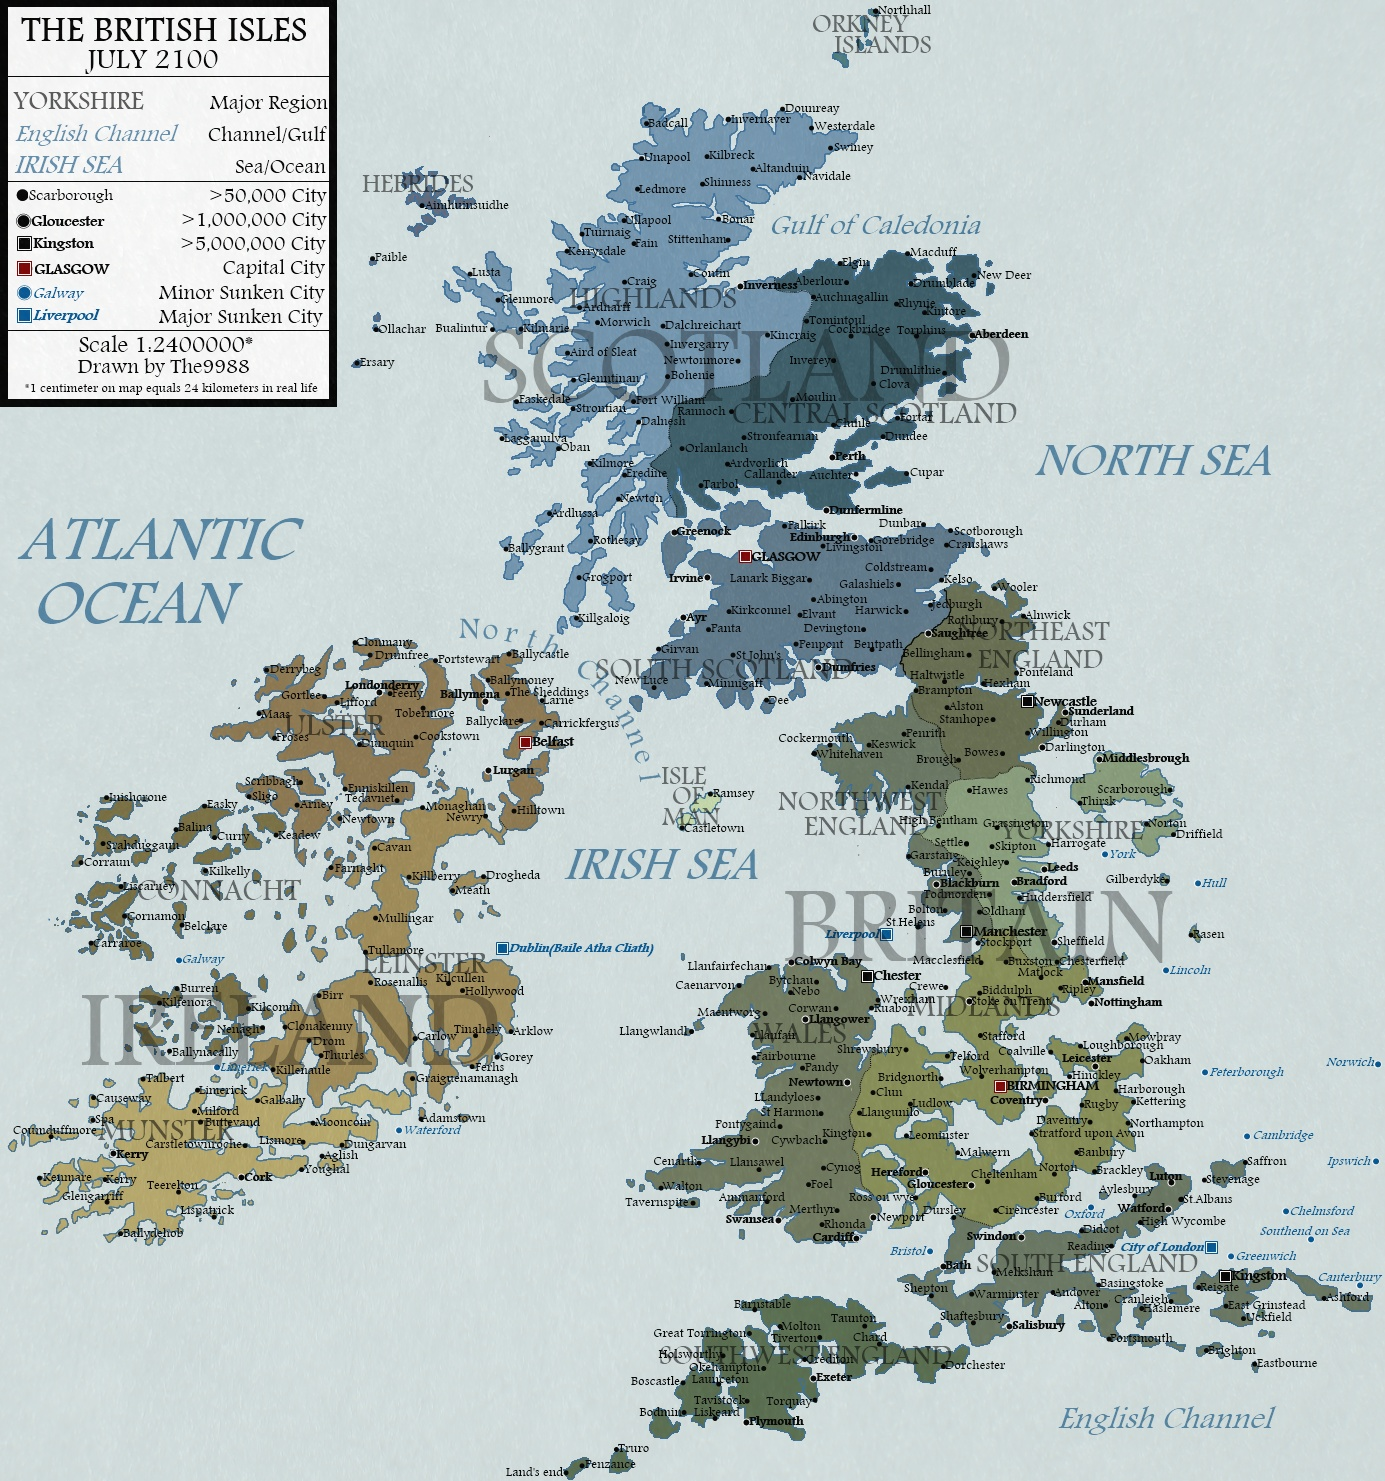 Map Of Uk If Sea Levels Rise.British Isles In 2100 By Jaysimons On Deviantart